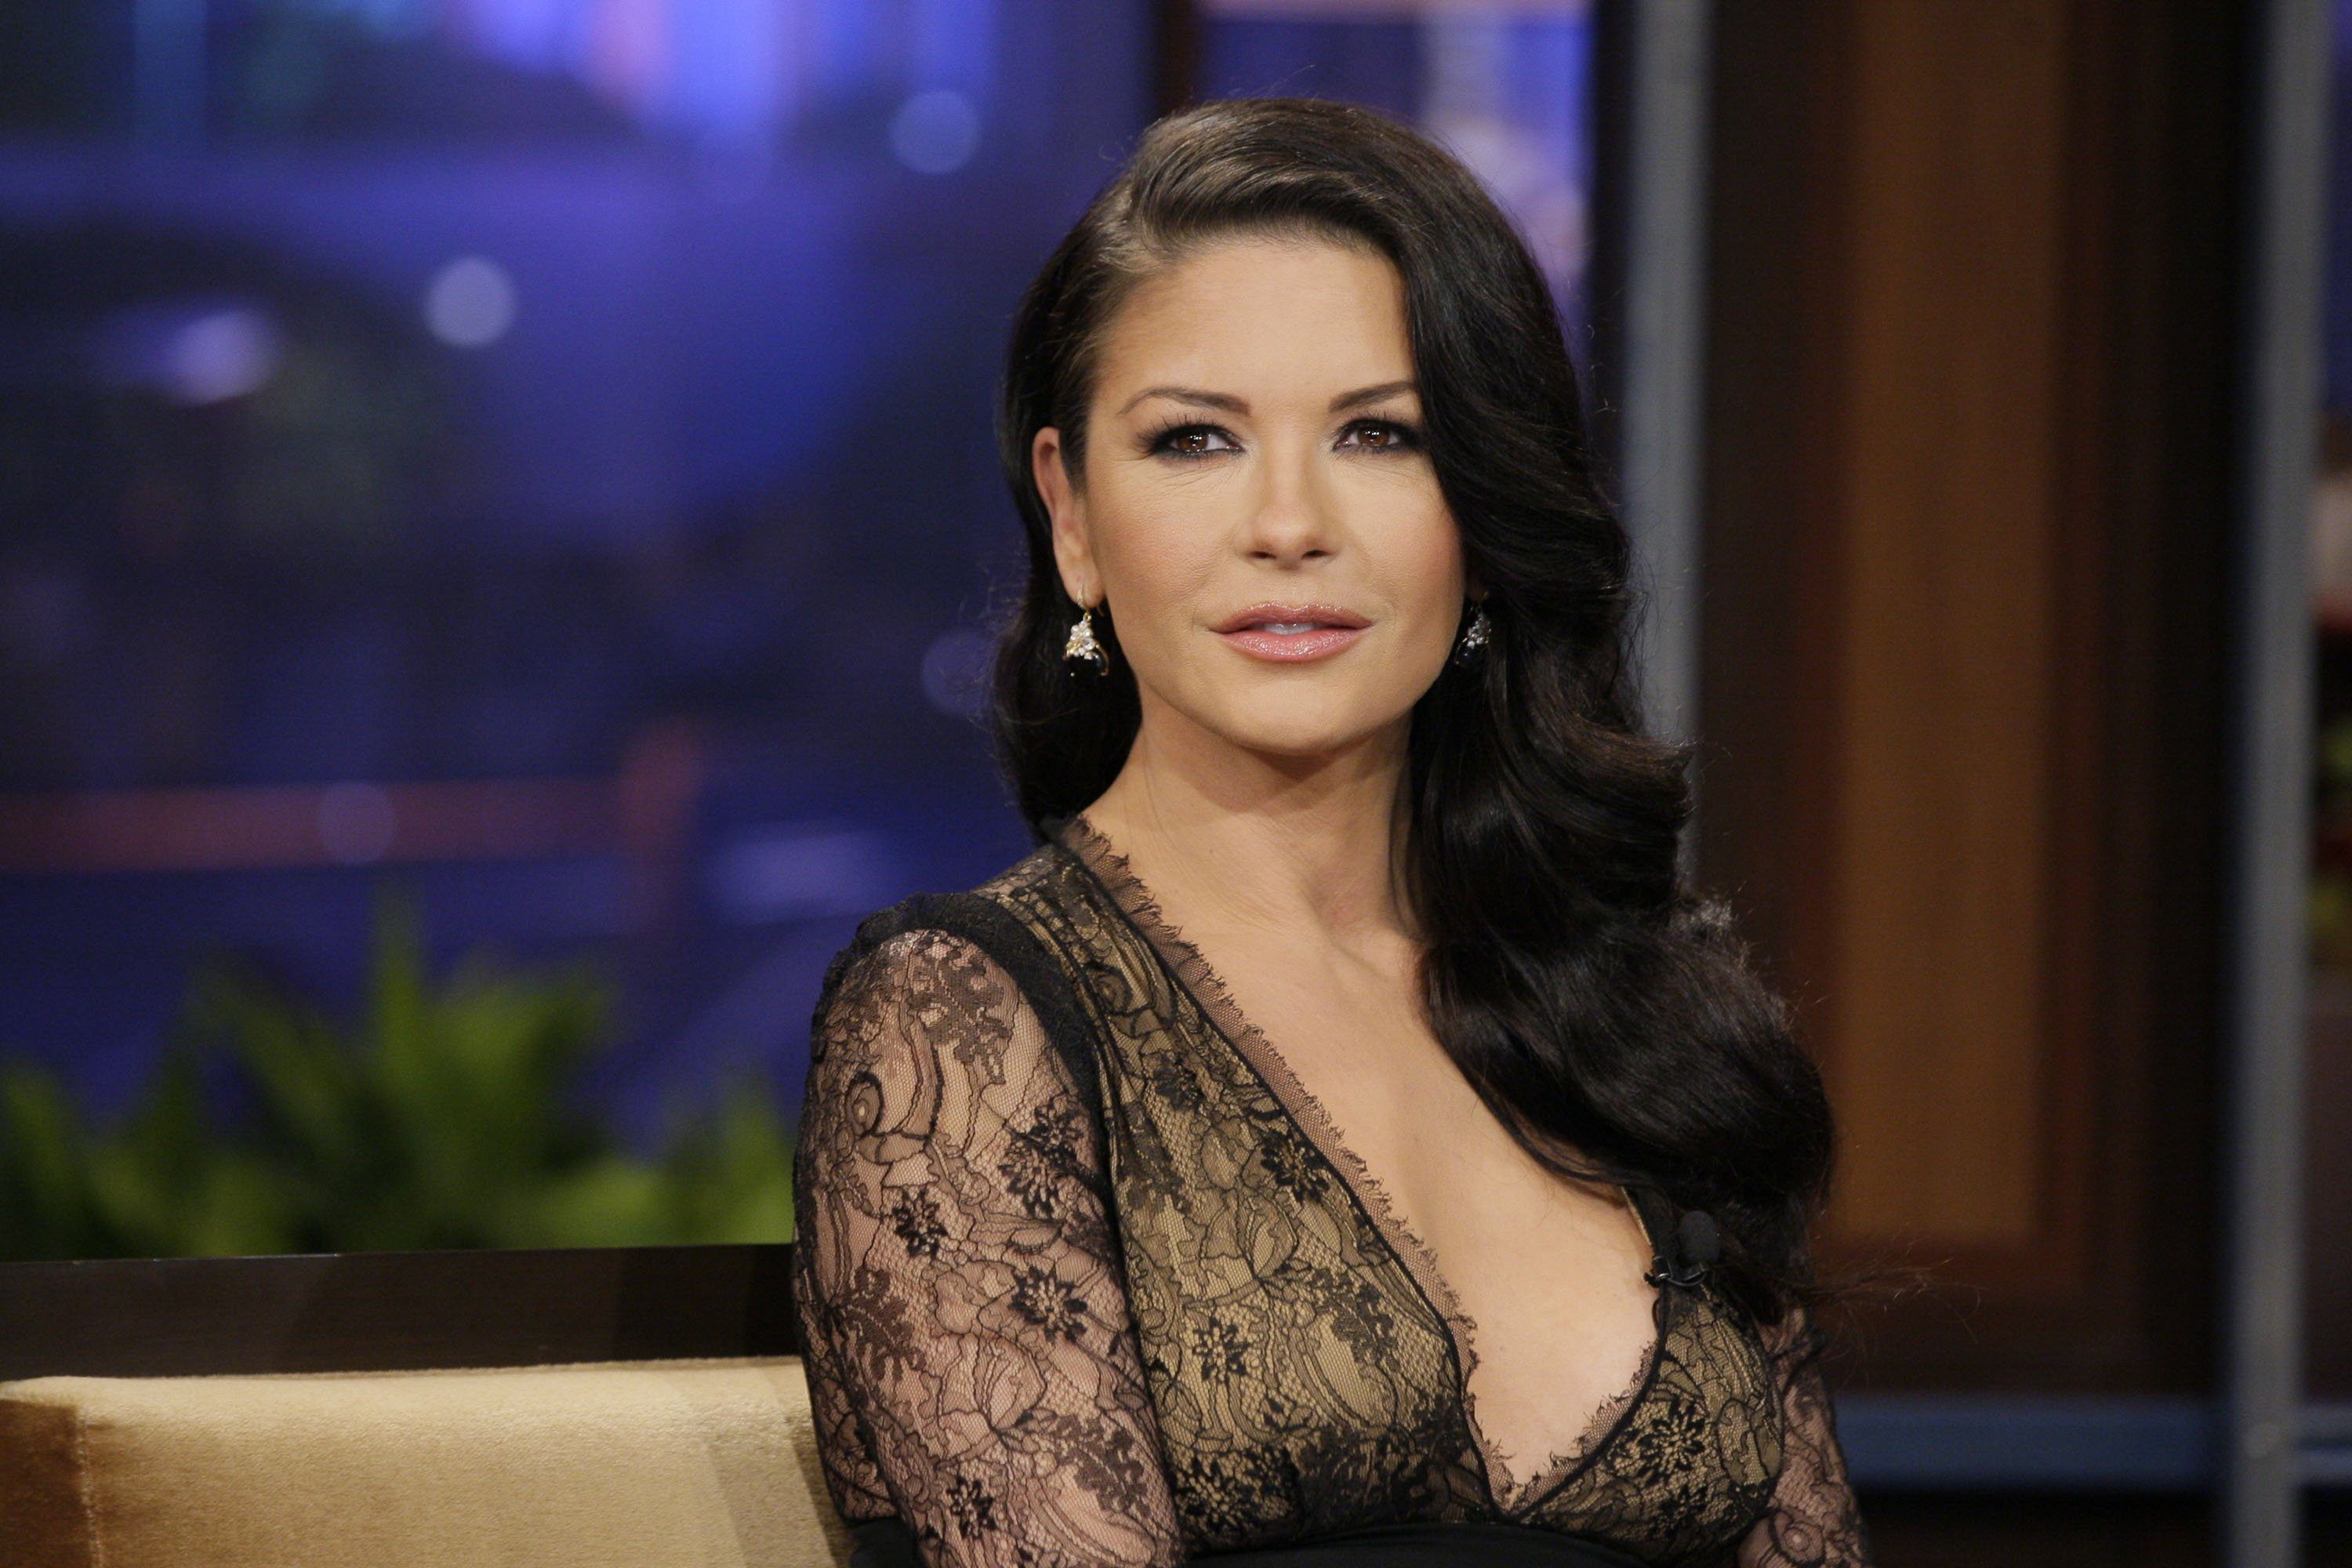 """Catherine Zeta-Jones during an interview on """"The Tonight Show with Jay Leno"""" on January 28, 2013   Photo: Getty Images"""